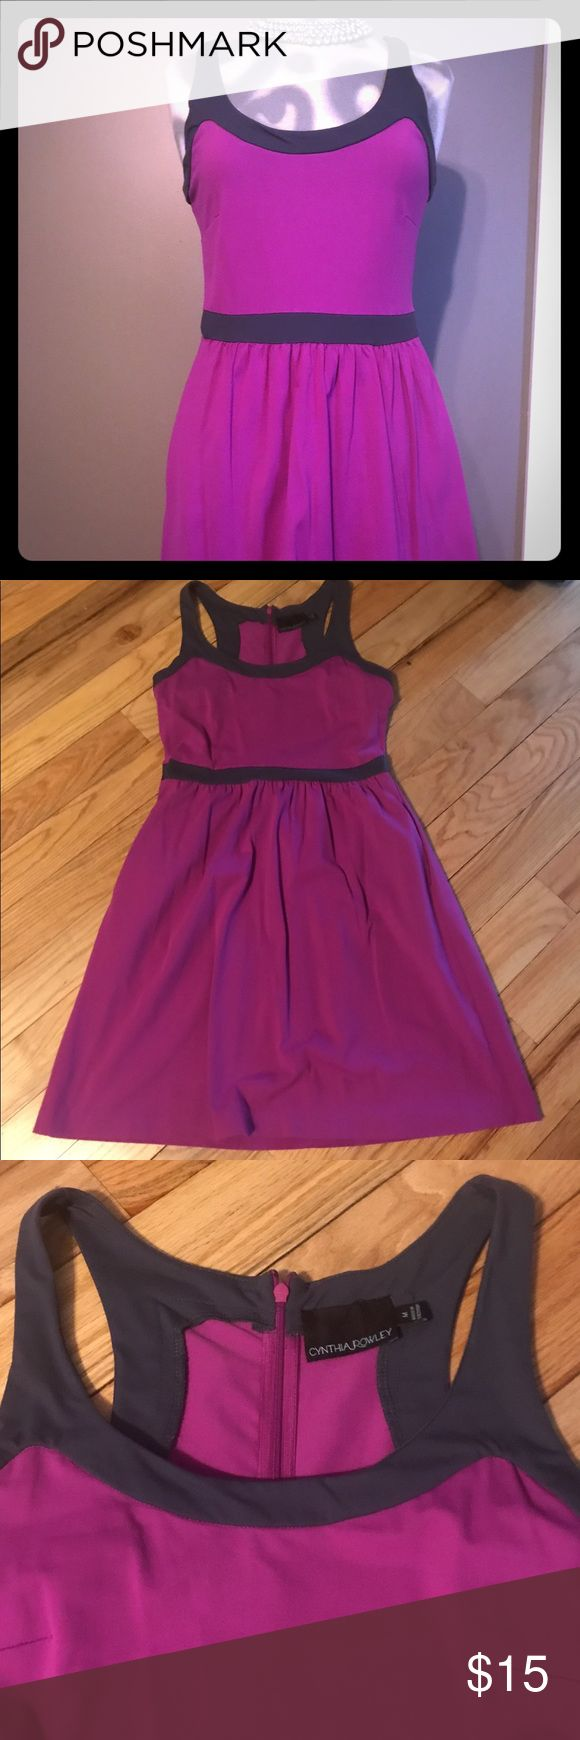 Cynthia Rowley Zipper Back Purple & Grey Dress This a beautiful purple and grey zipper back dress, size medium. The dress has pockets and is great for the office or a night out with friends. Cynthia Rowley Dresses